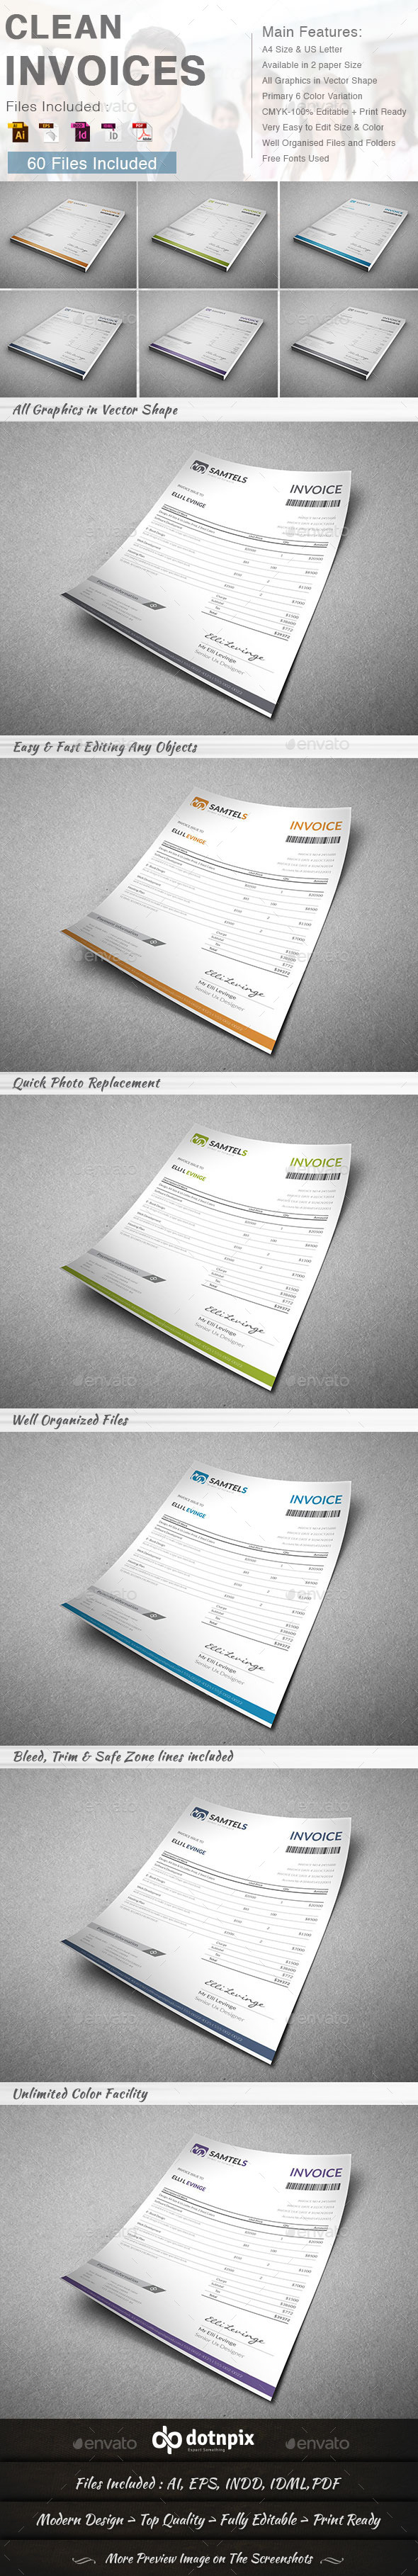 GraphicRiver Clean Invoices 6 in 1 9310227